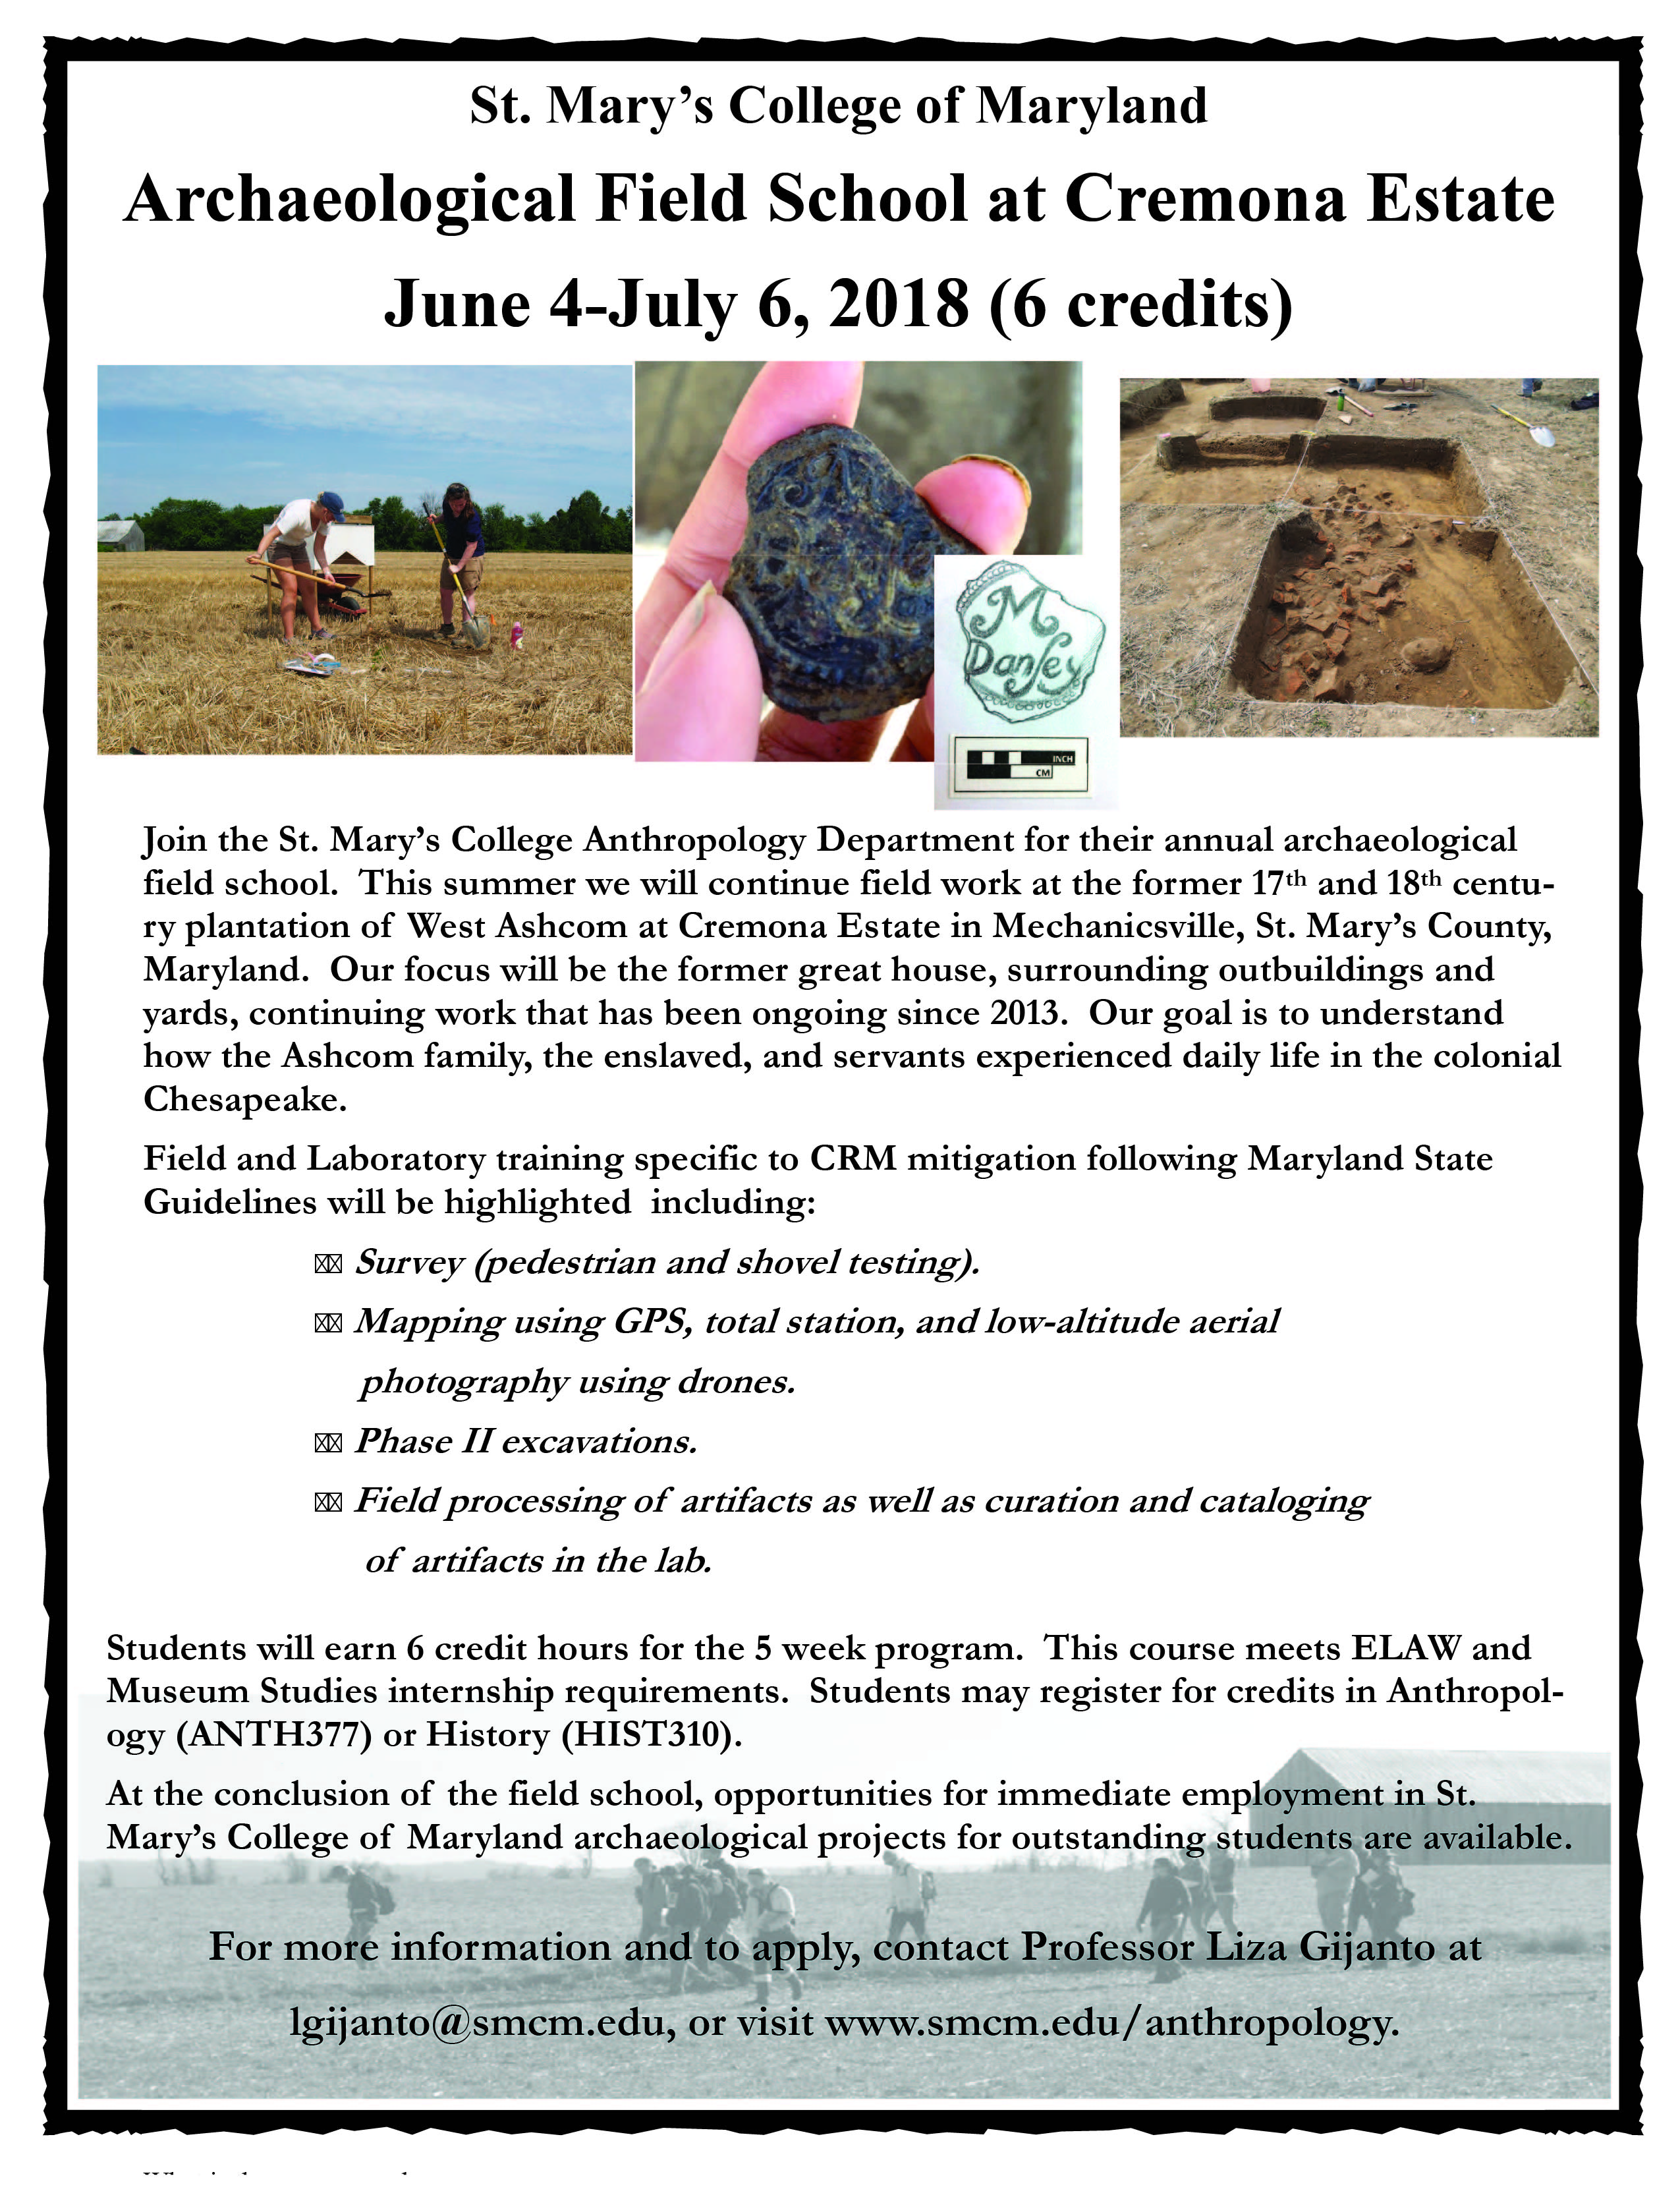 Archaeological Field School at Cremona Estate 2018 flyer